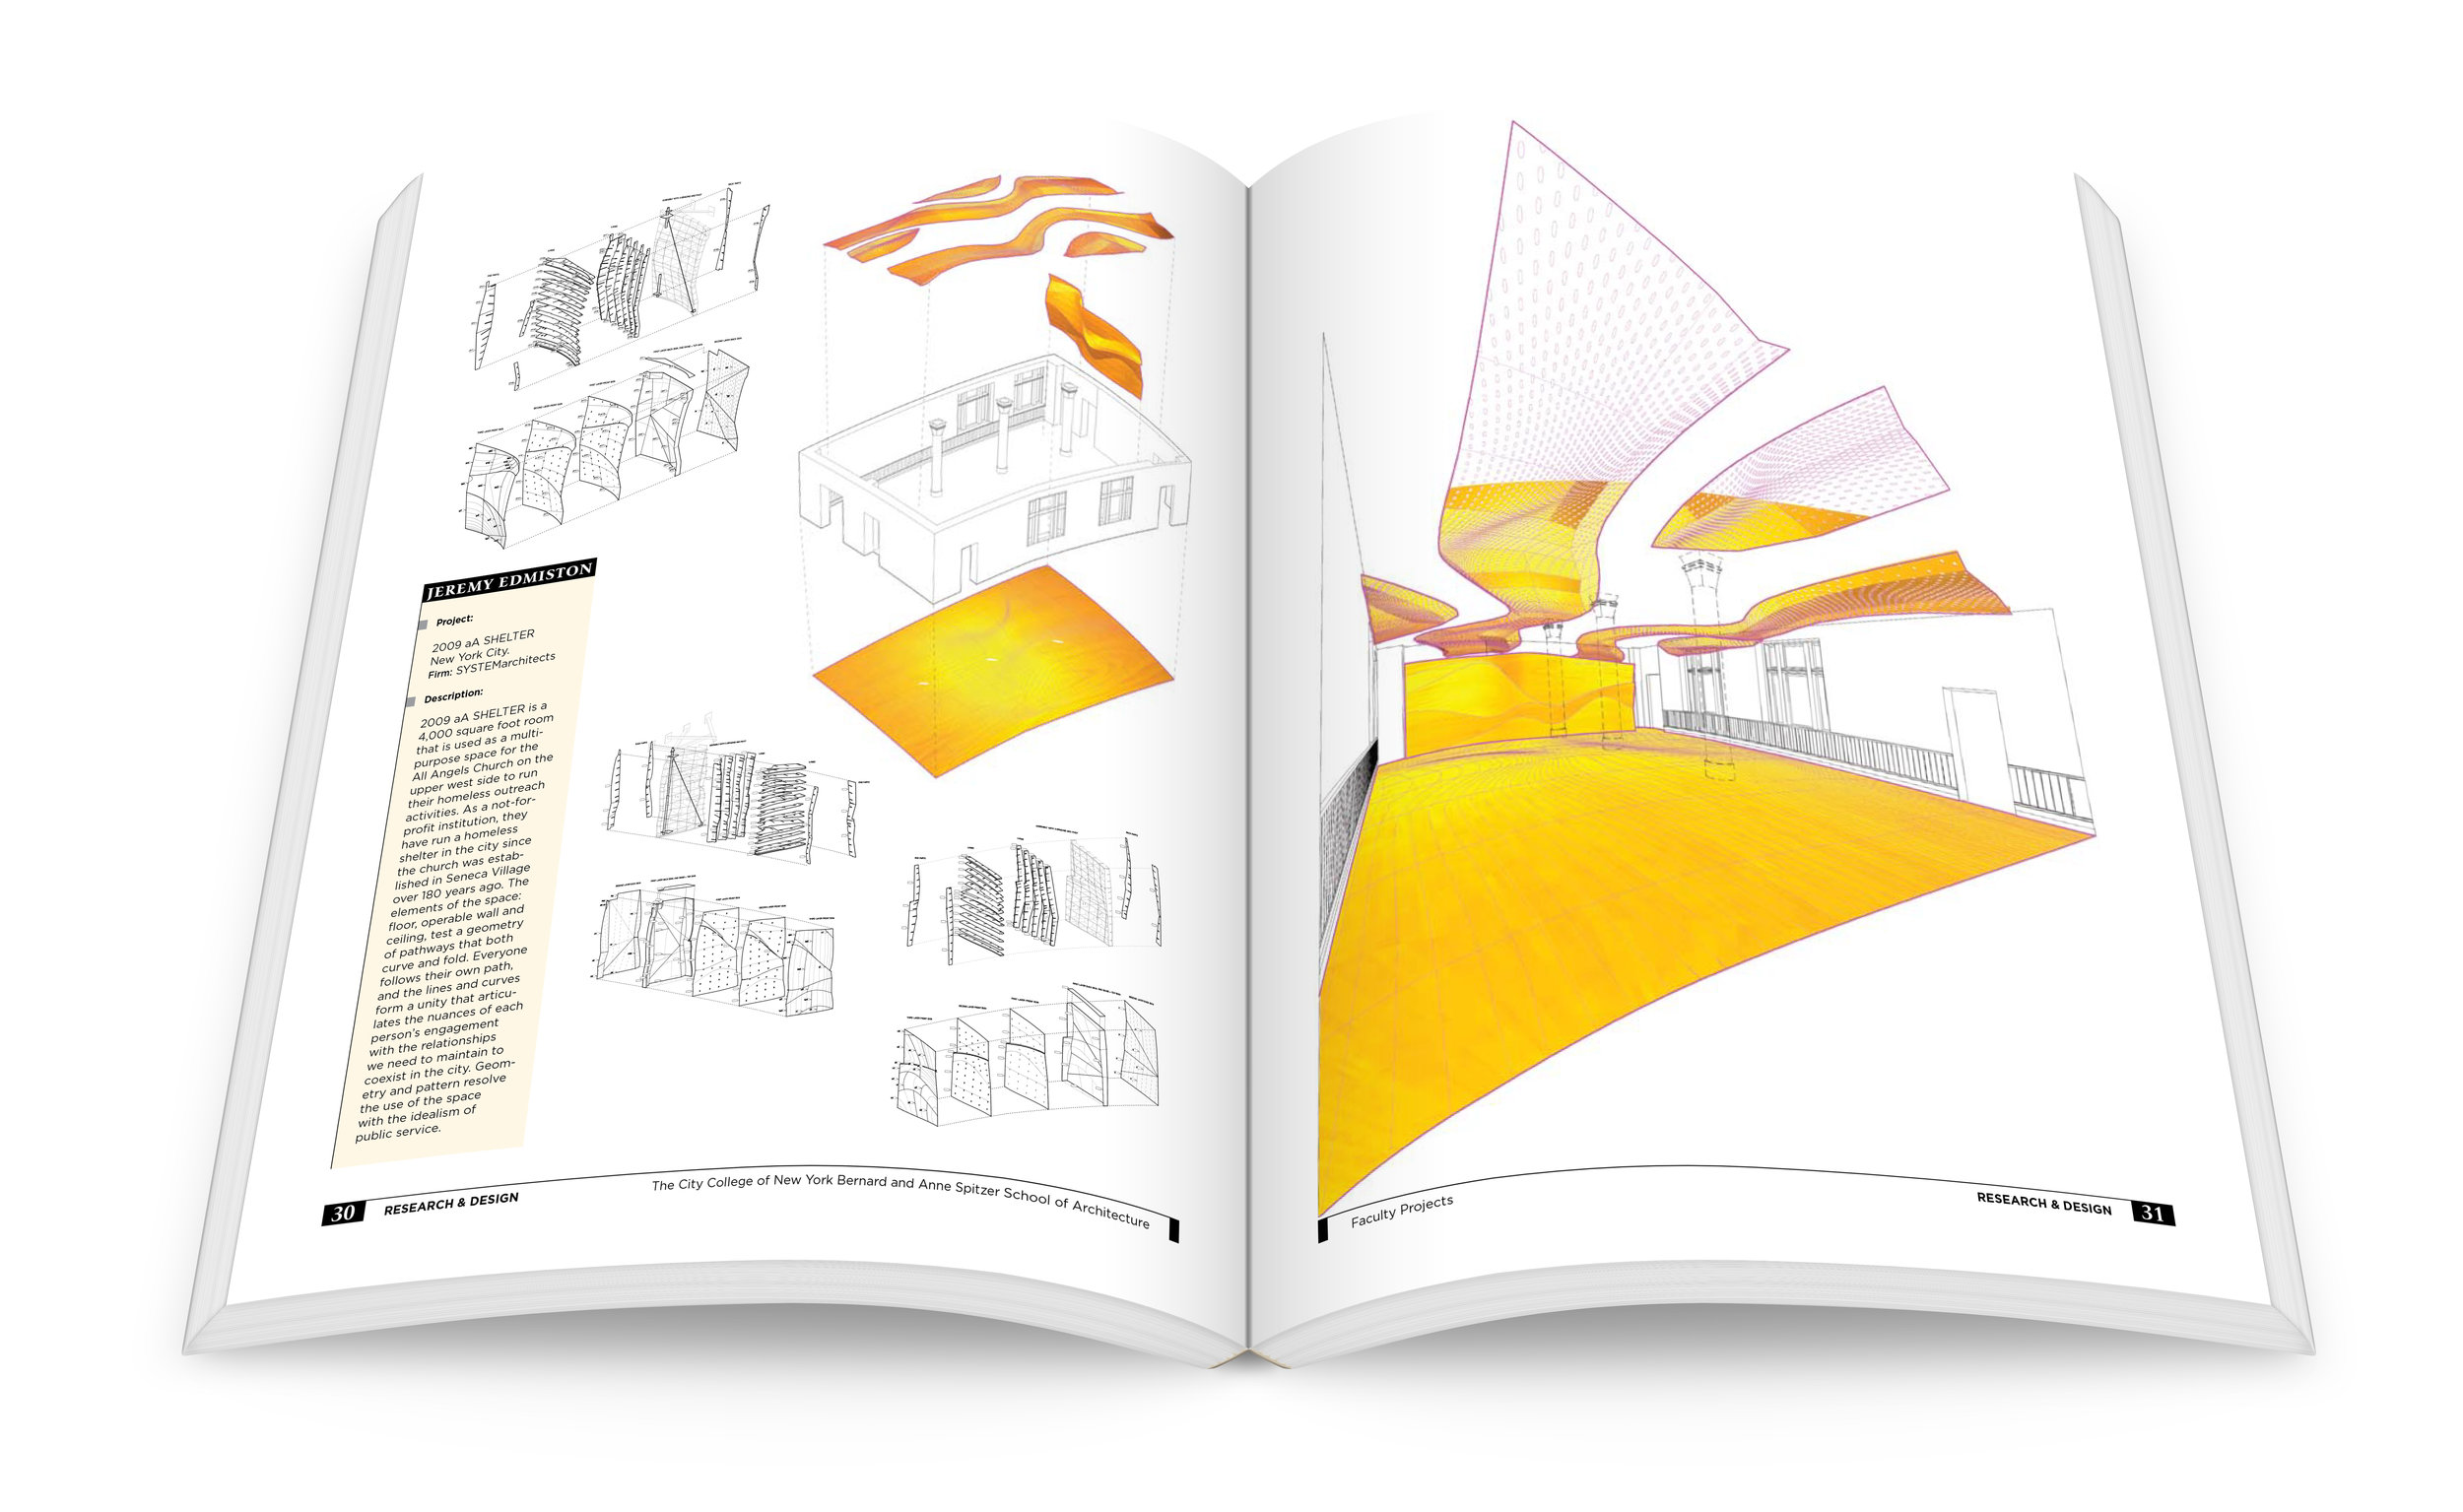 Research & Design. The City College of New York, Bernard and Anne Spitzer School of Architecture.